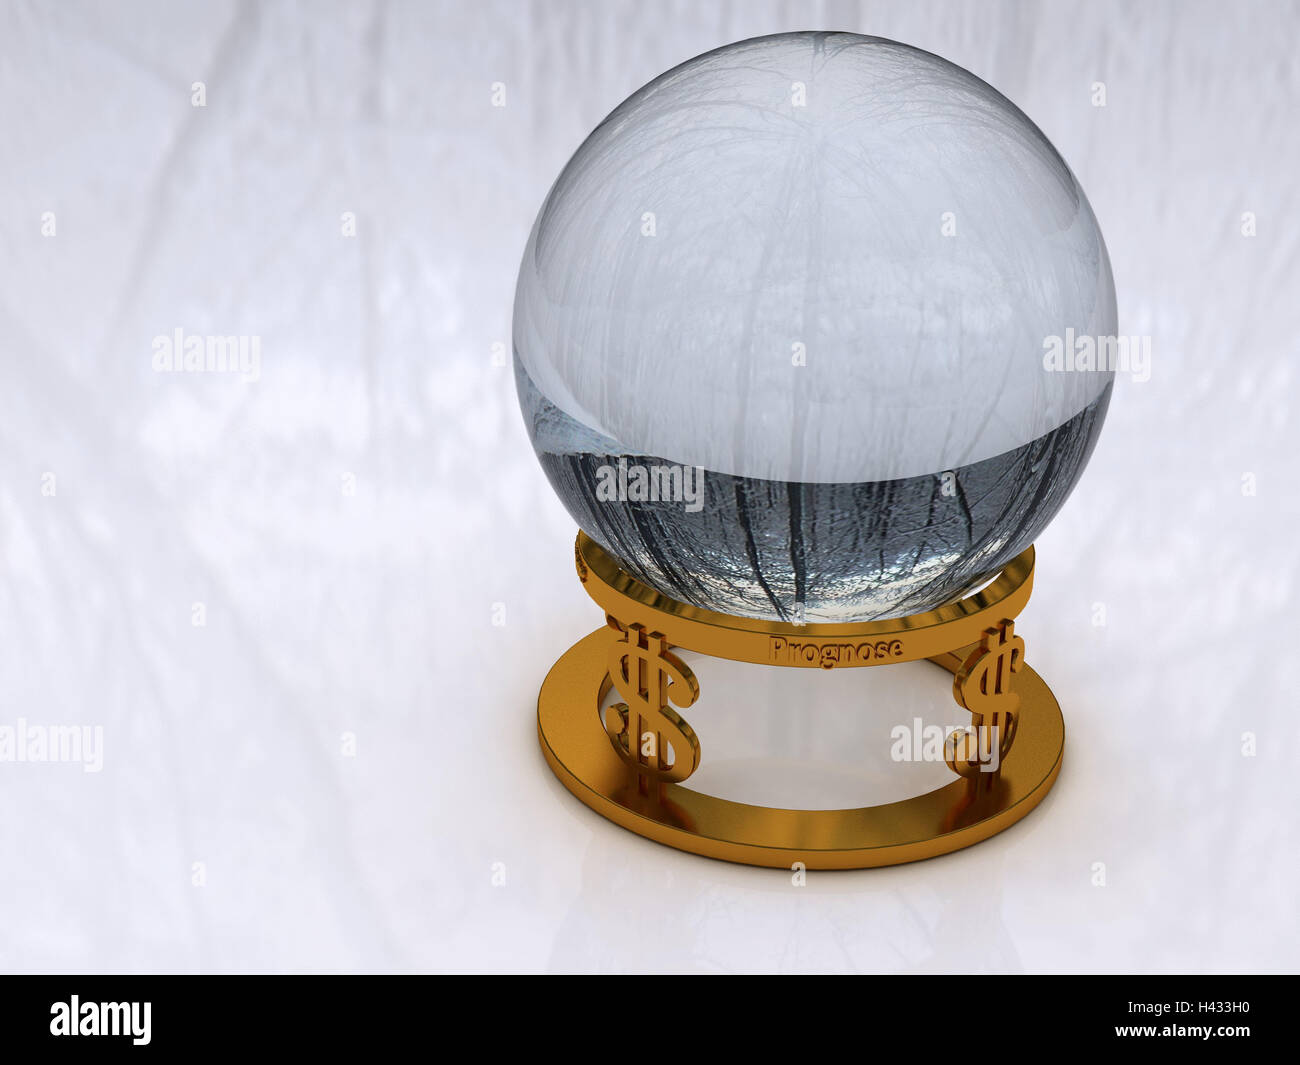 Crystal ball, mounting, dollar sign, computer graphics, glass ball, sphere, forecast, future, Zukuftsprognose, economic - Stock Image